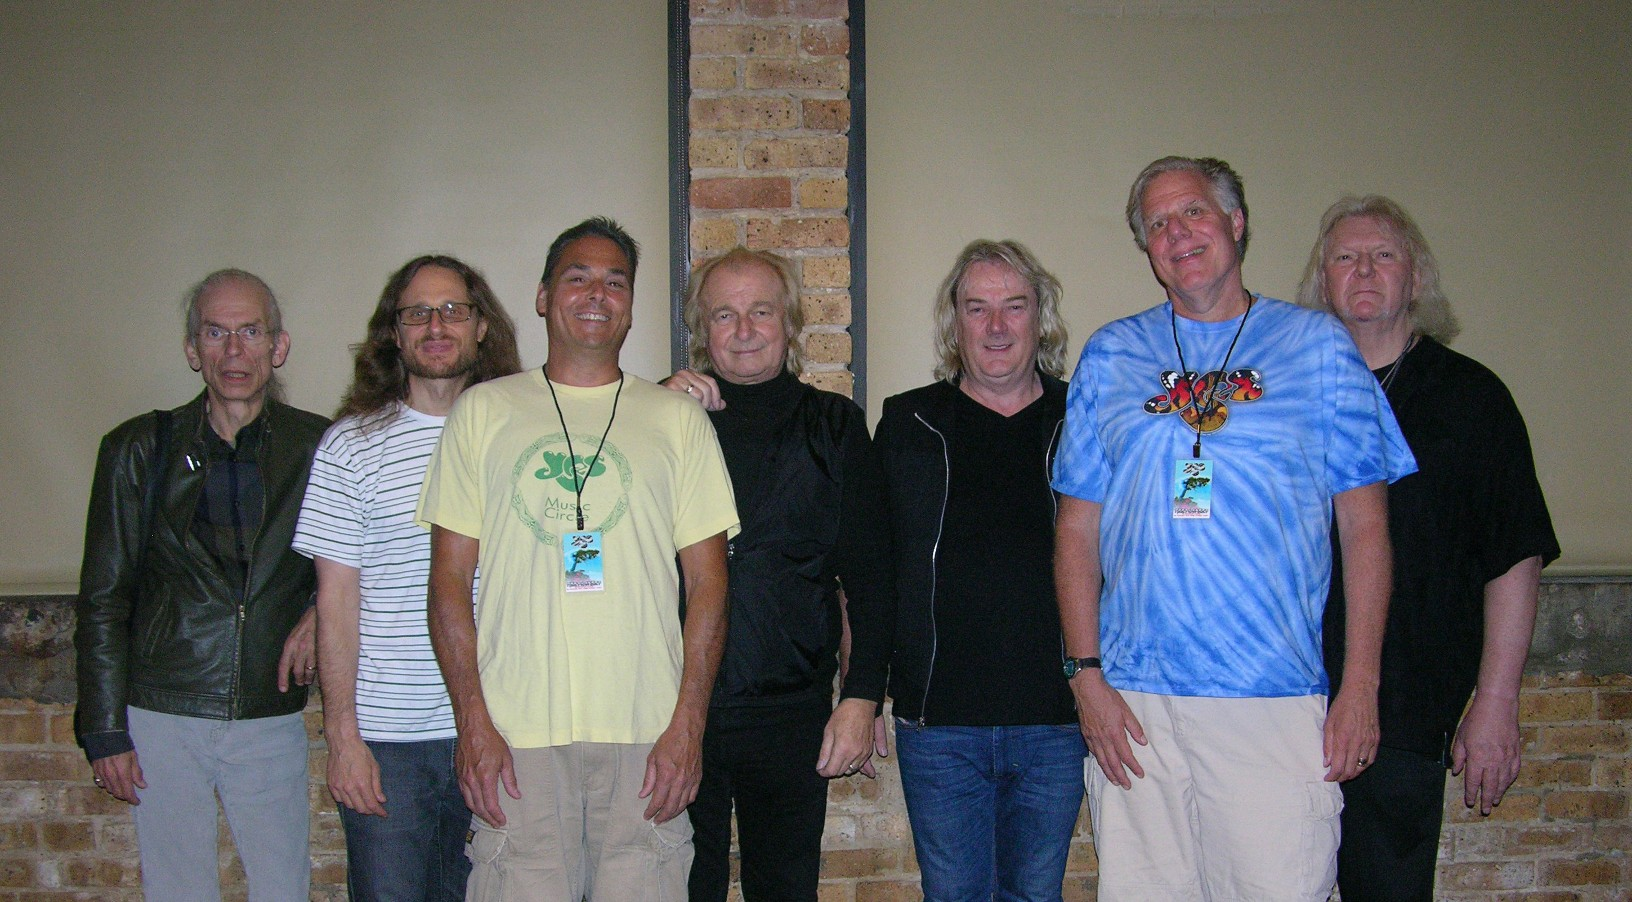 Jeff_and_Gary_with_the_band.jpg